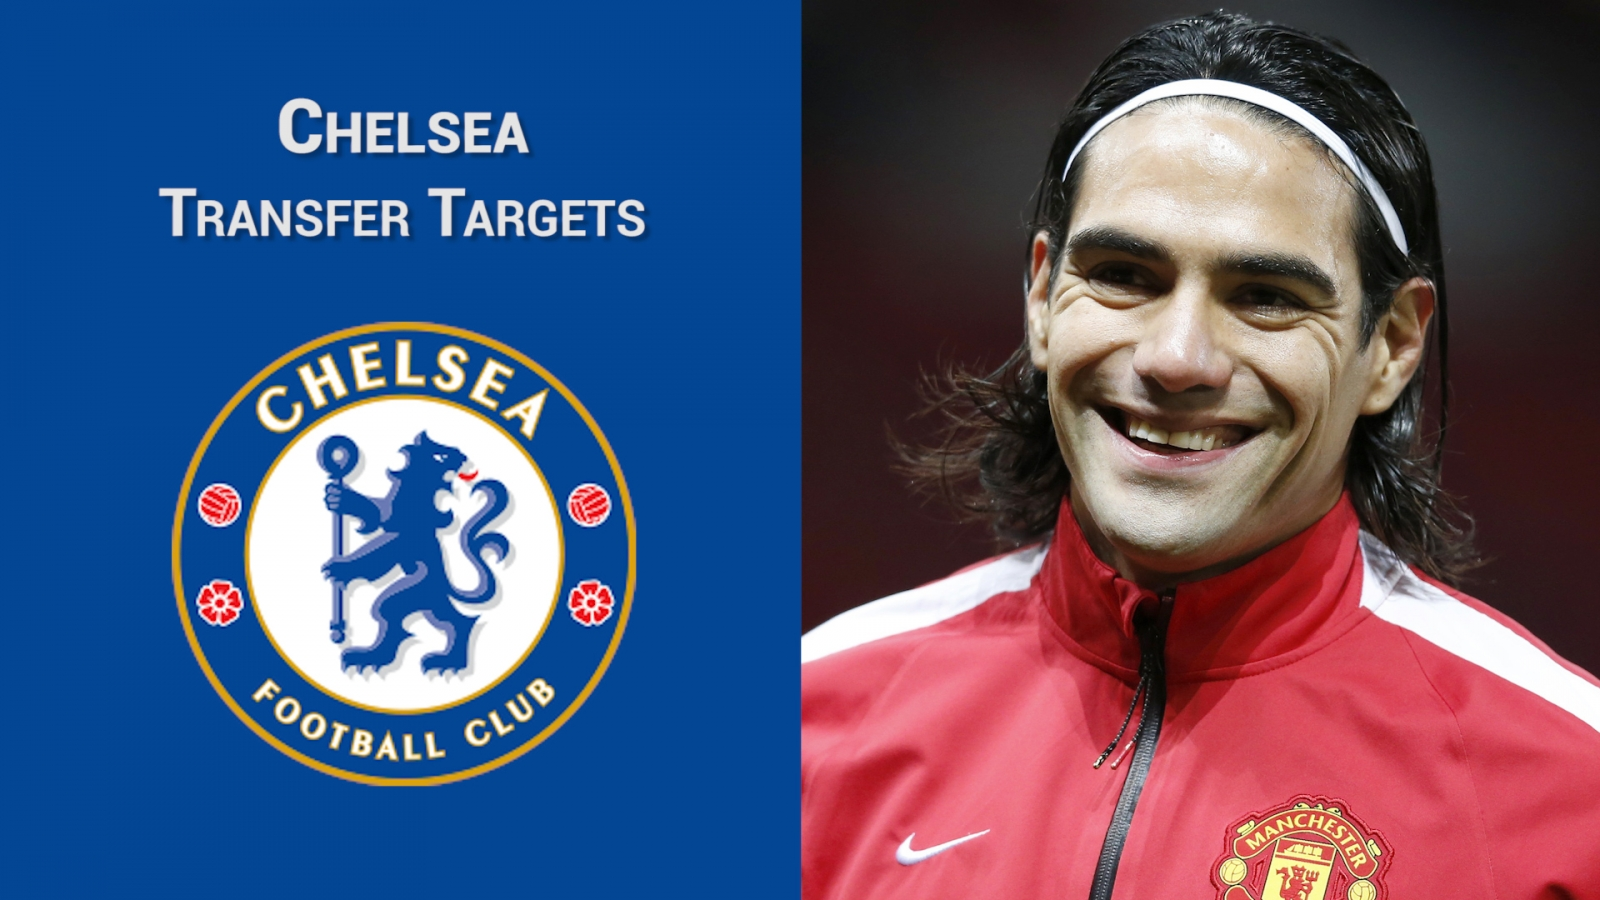 chelsea football club transfer news